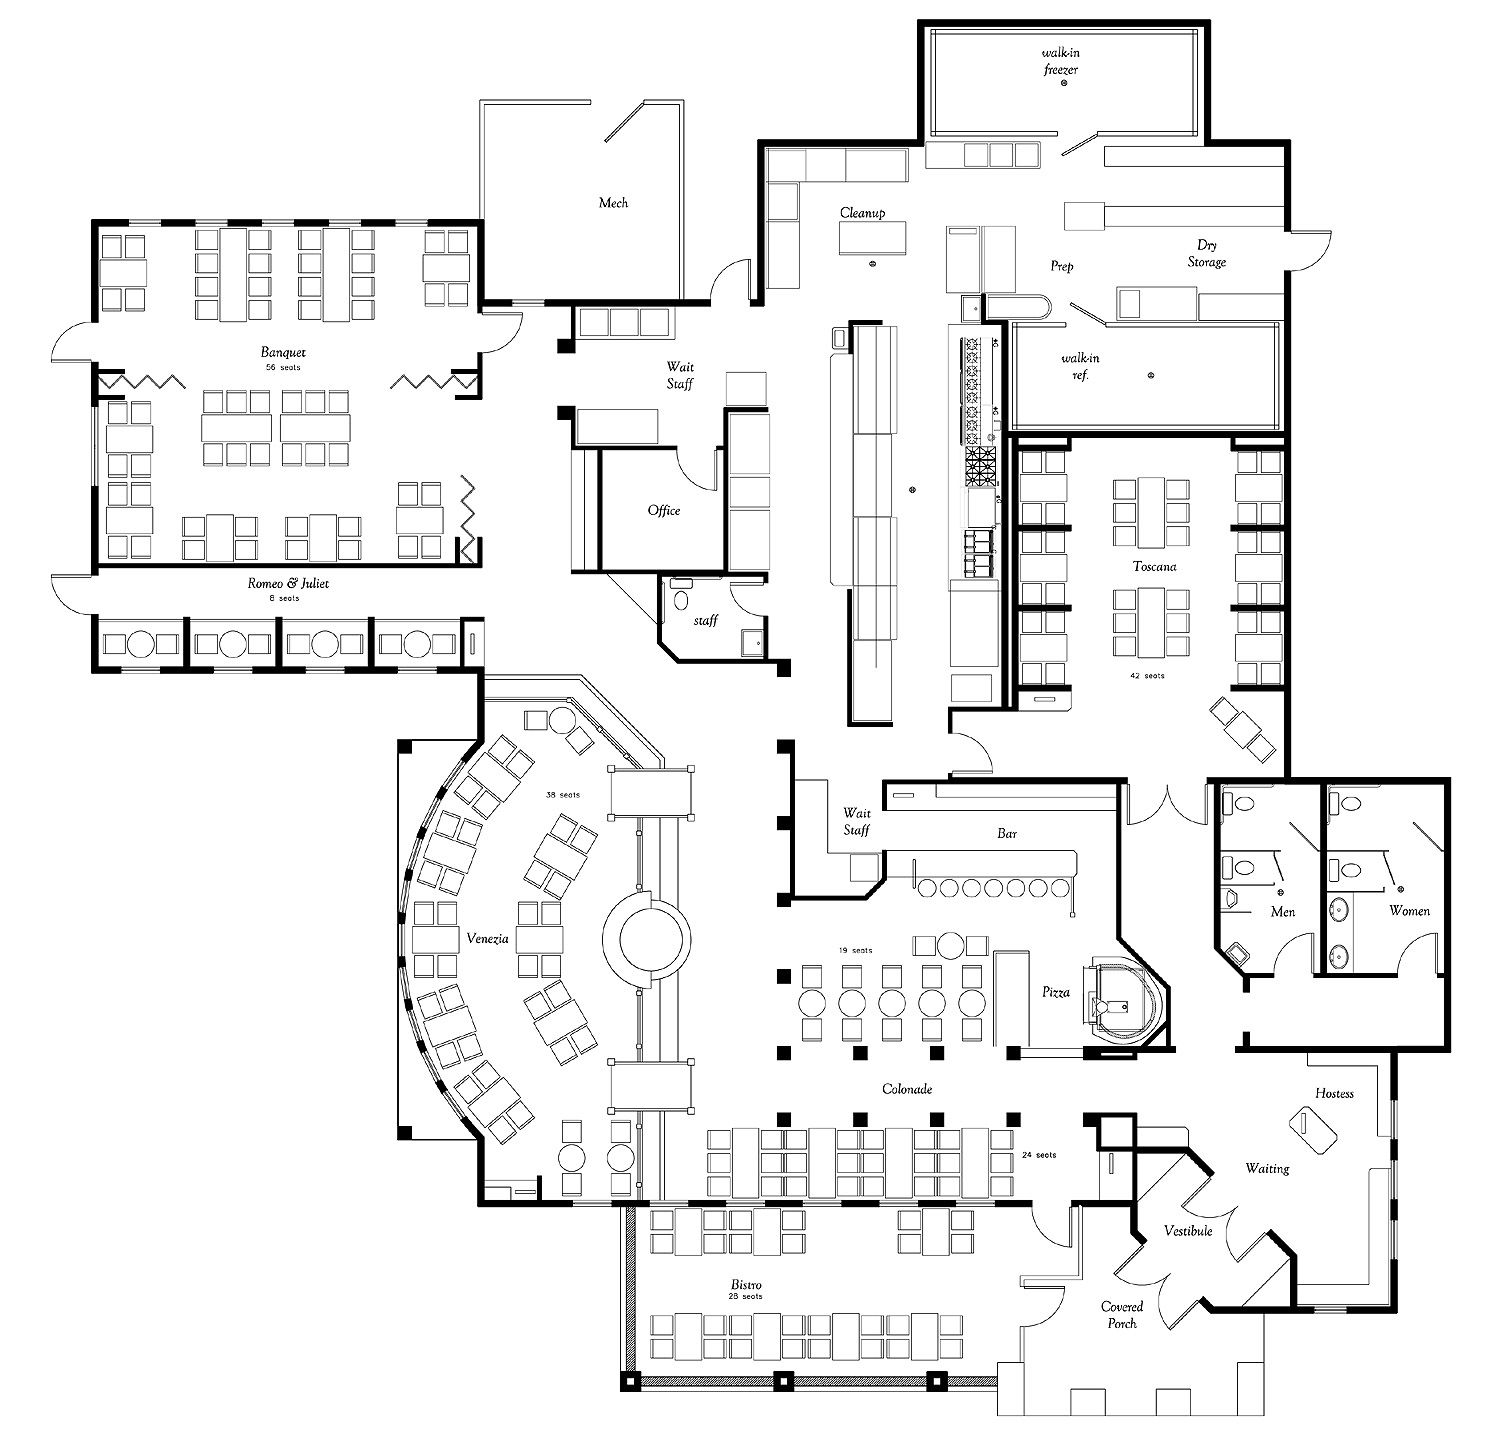 giovanni italian restaurant floor plan case study